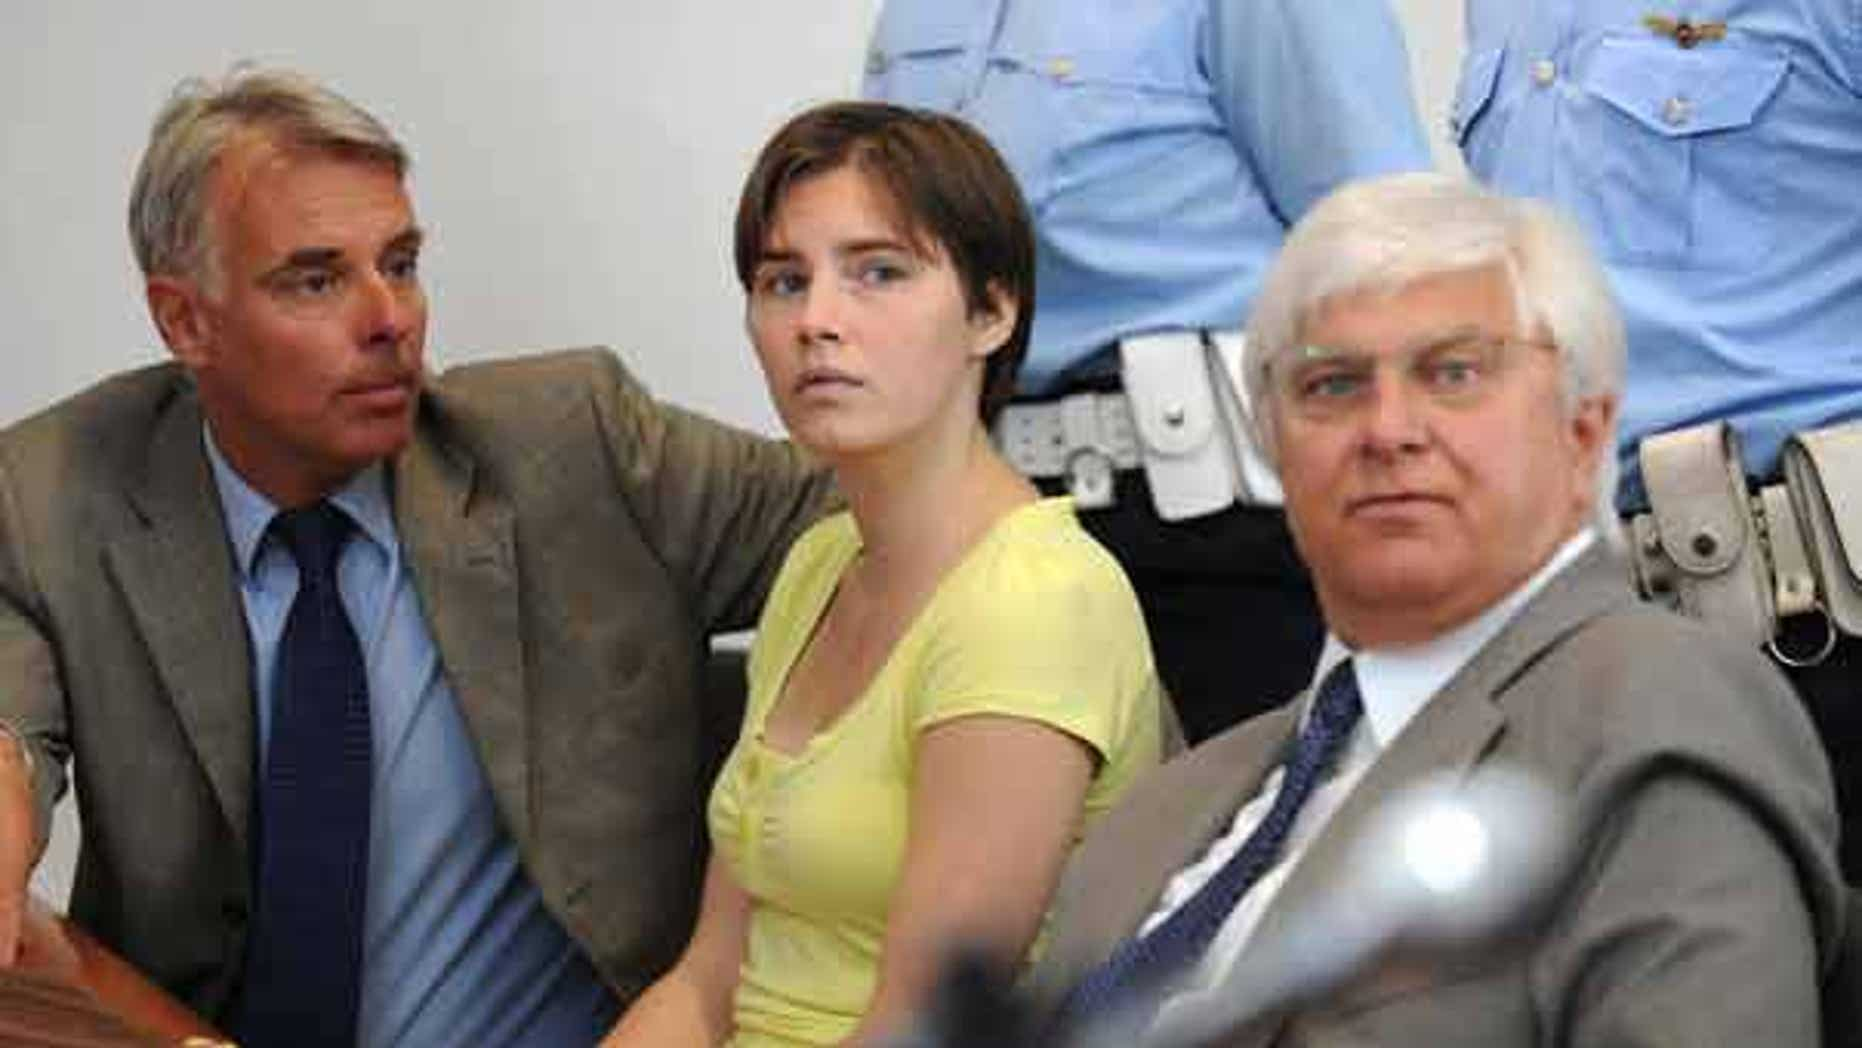 Amanda Knox sits between her two lawyers during a preliminary hearing in Perugia, Italy.